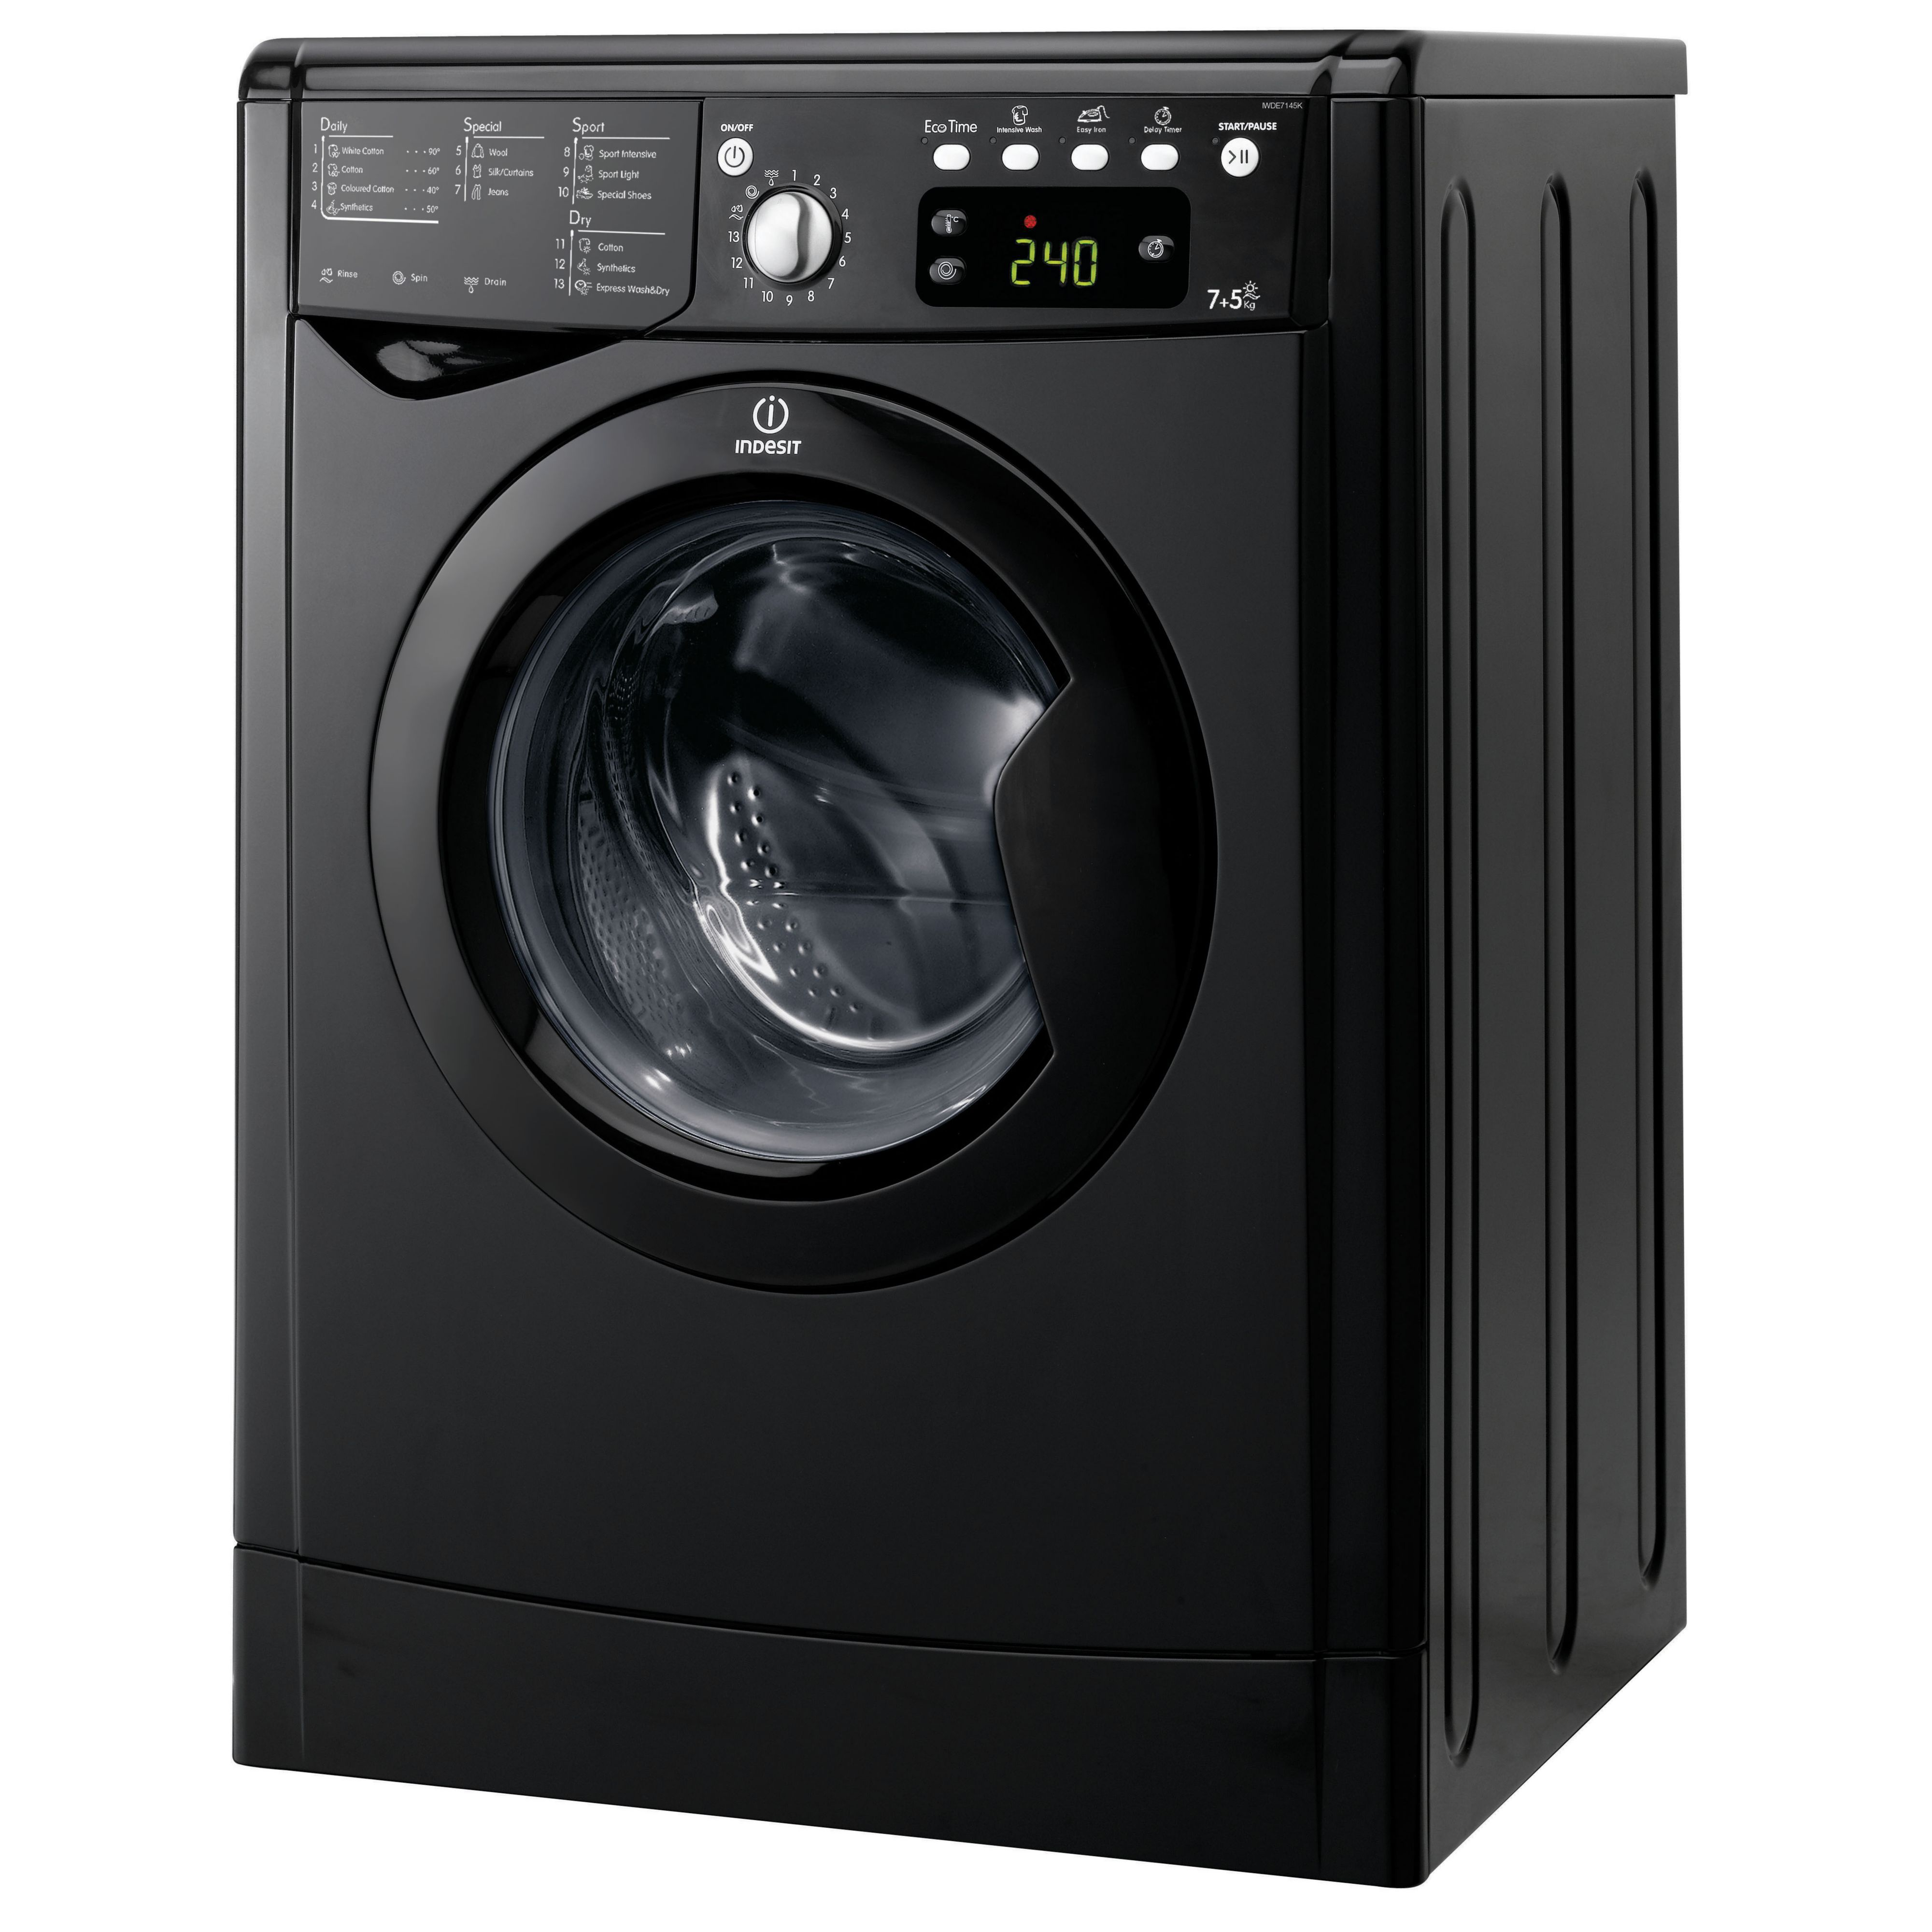 Indesit Iwde7145k Uk Black Freestanding Washer Dryer